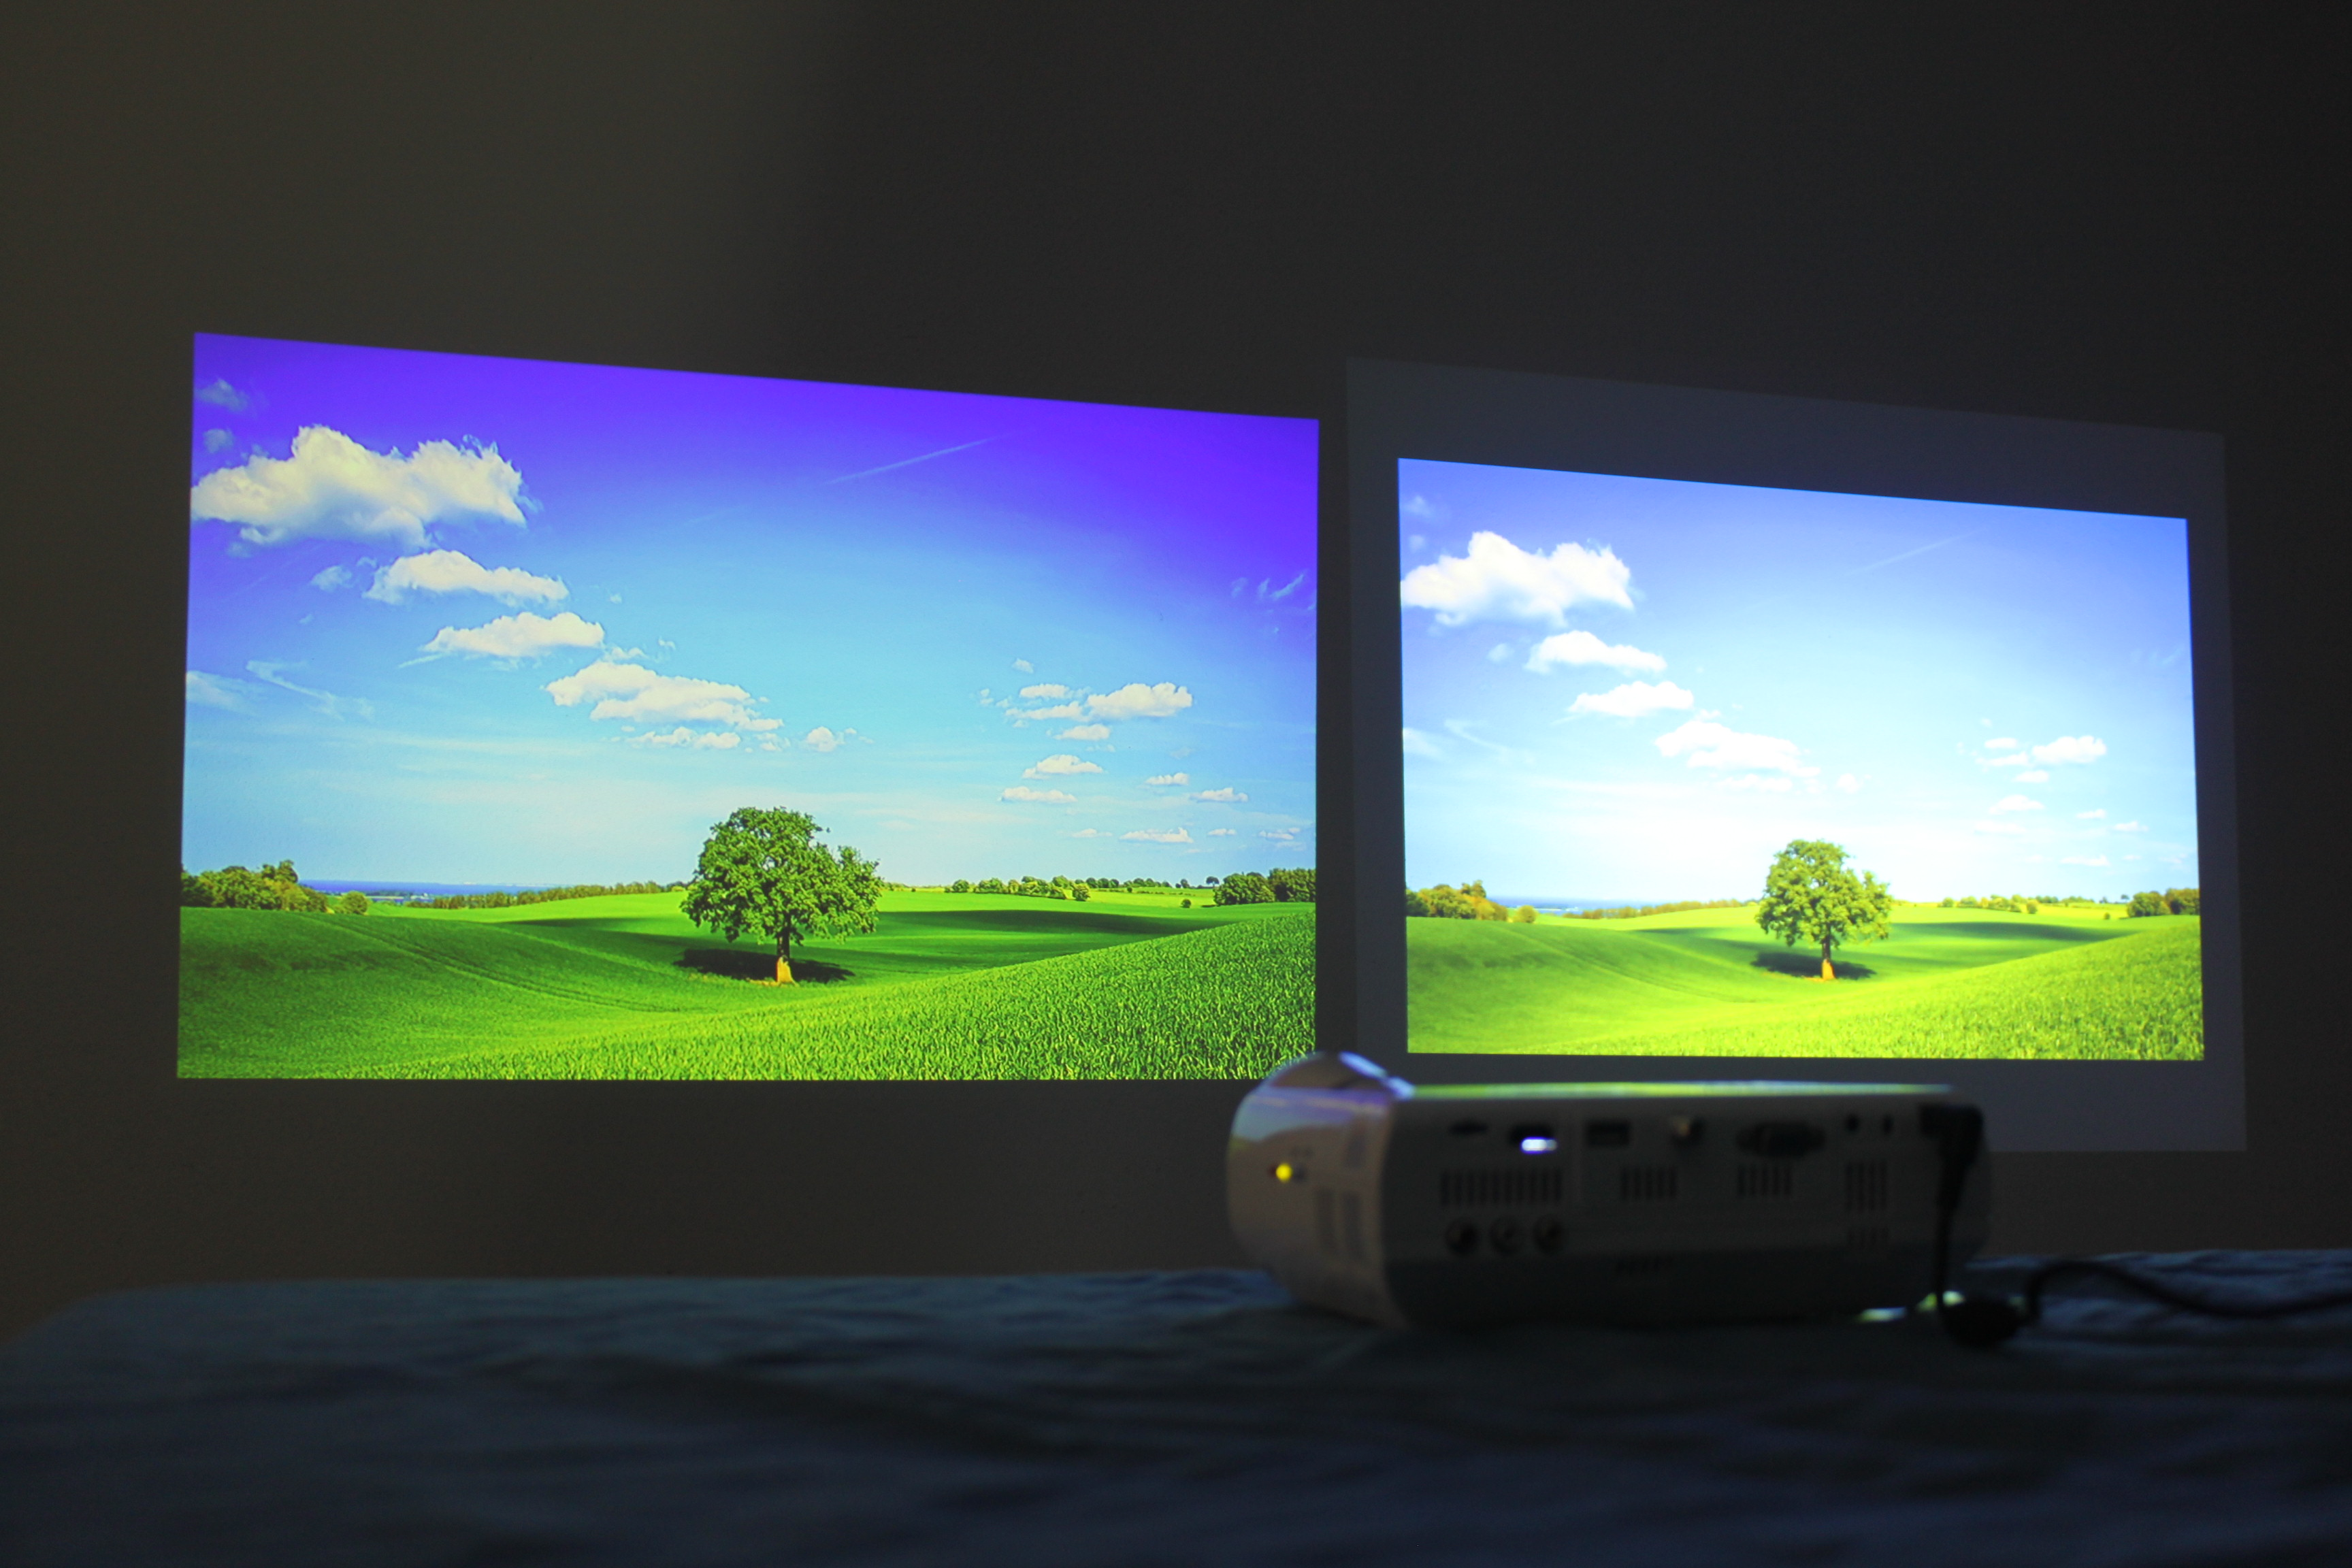 Epson ex3220 and aaxa m4 review we took the epson 3lcd for Compare micro projectors